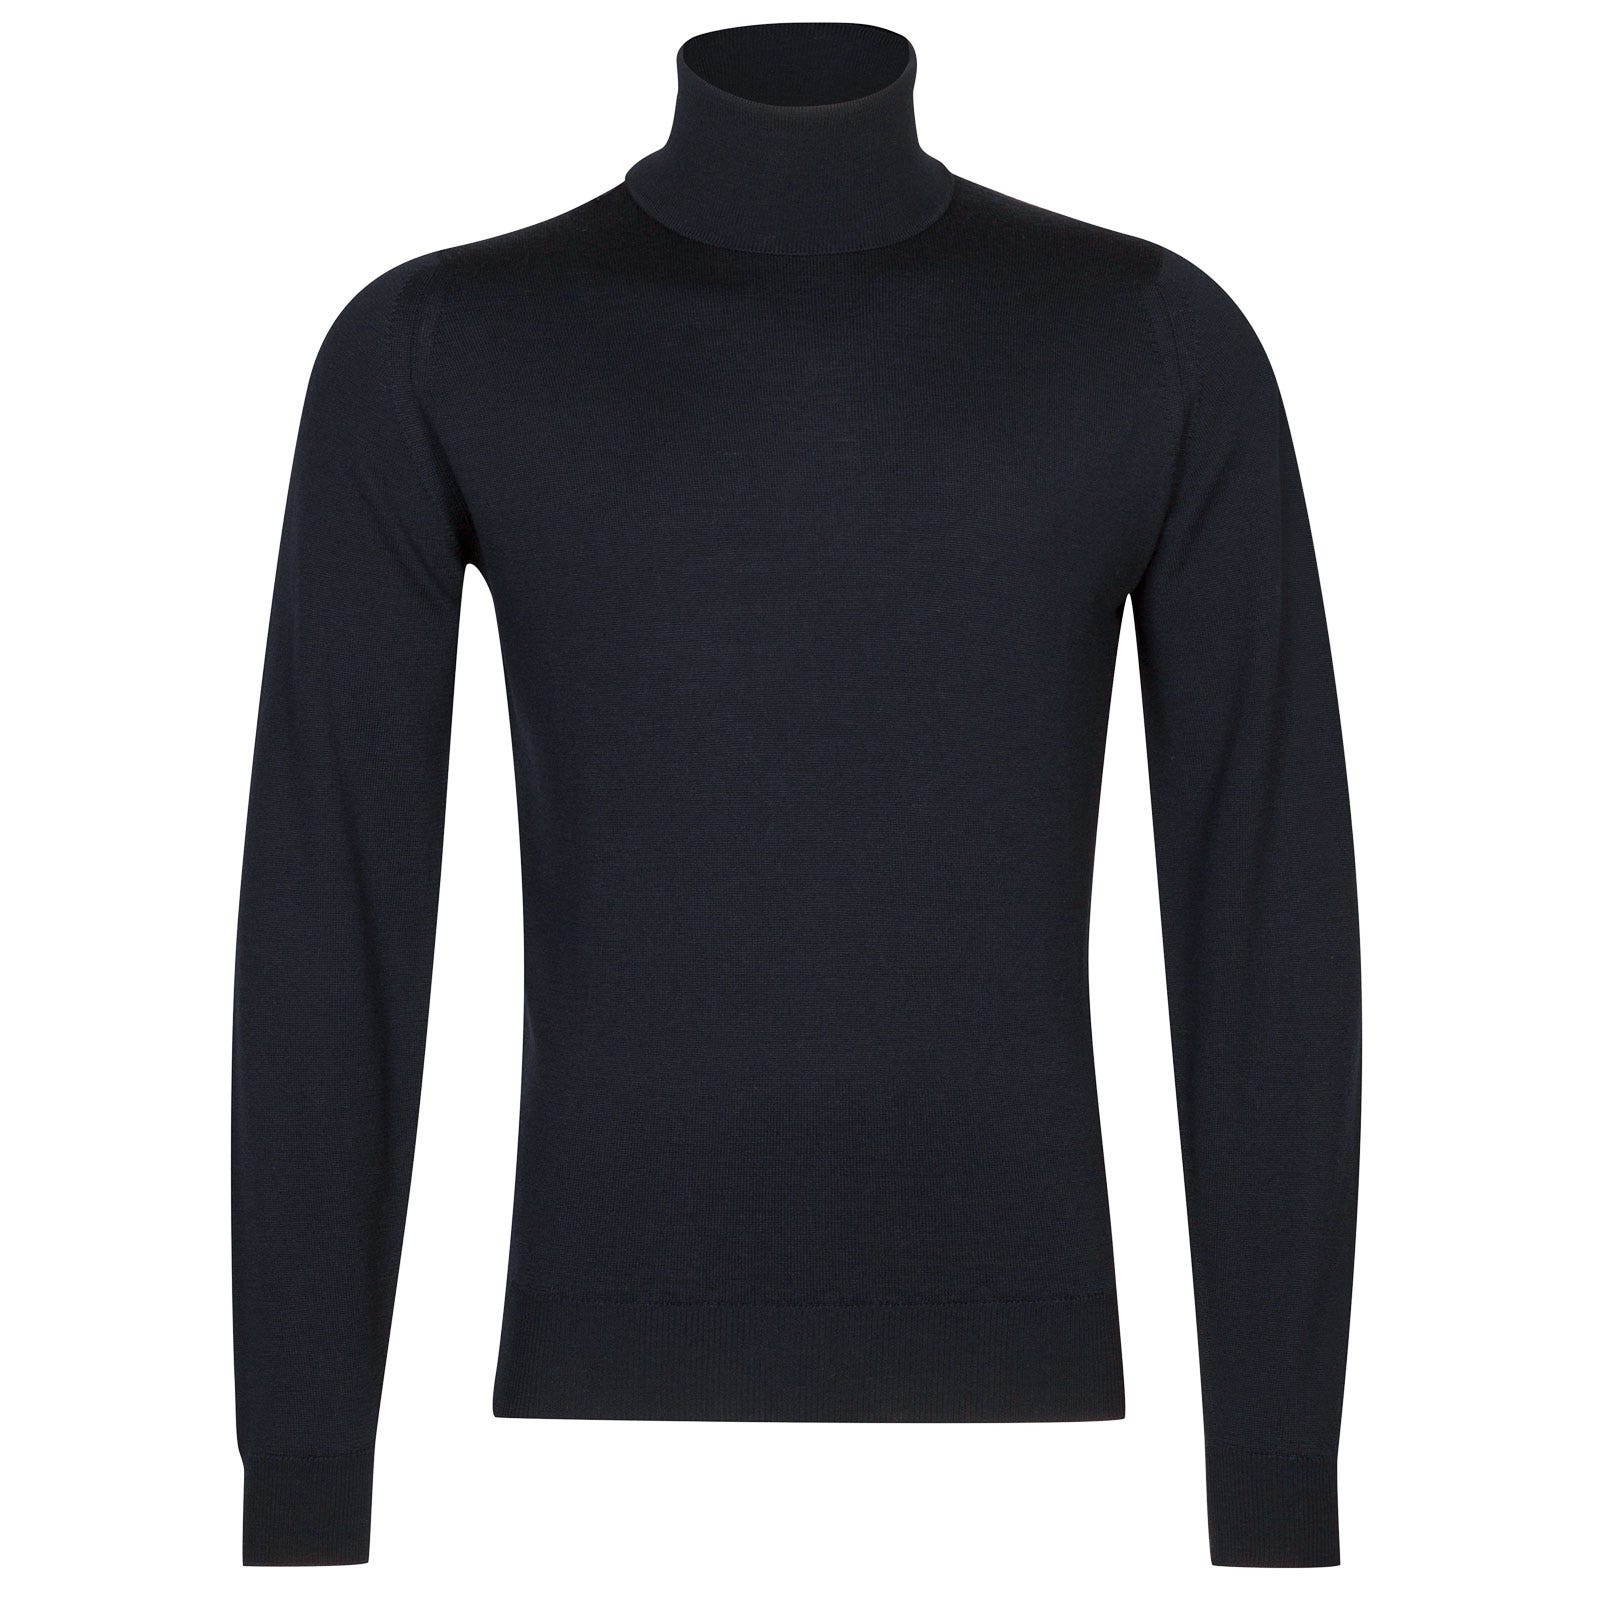 John Smedley connell Merino Wool Pullover in Midnight-XXL